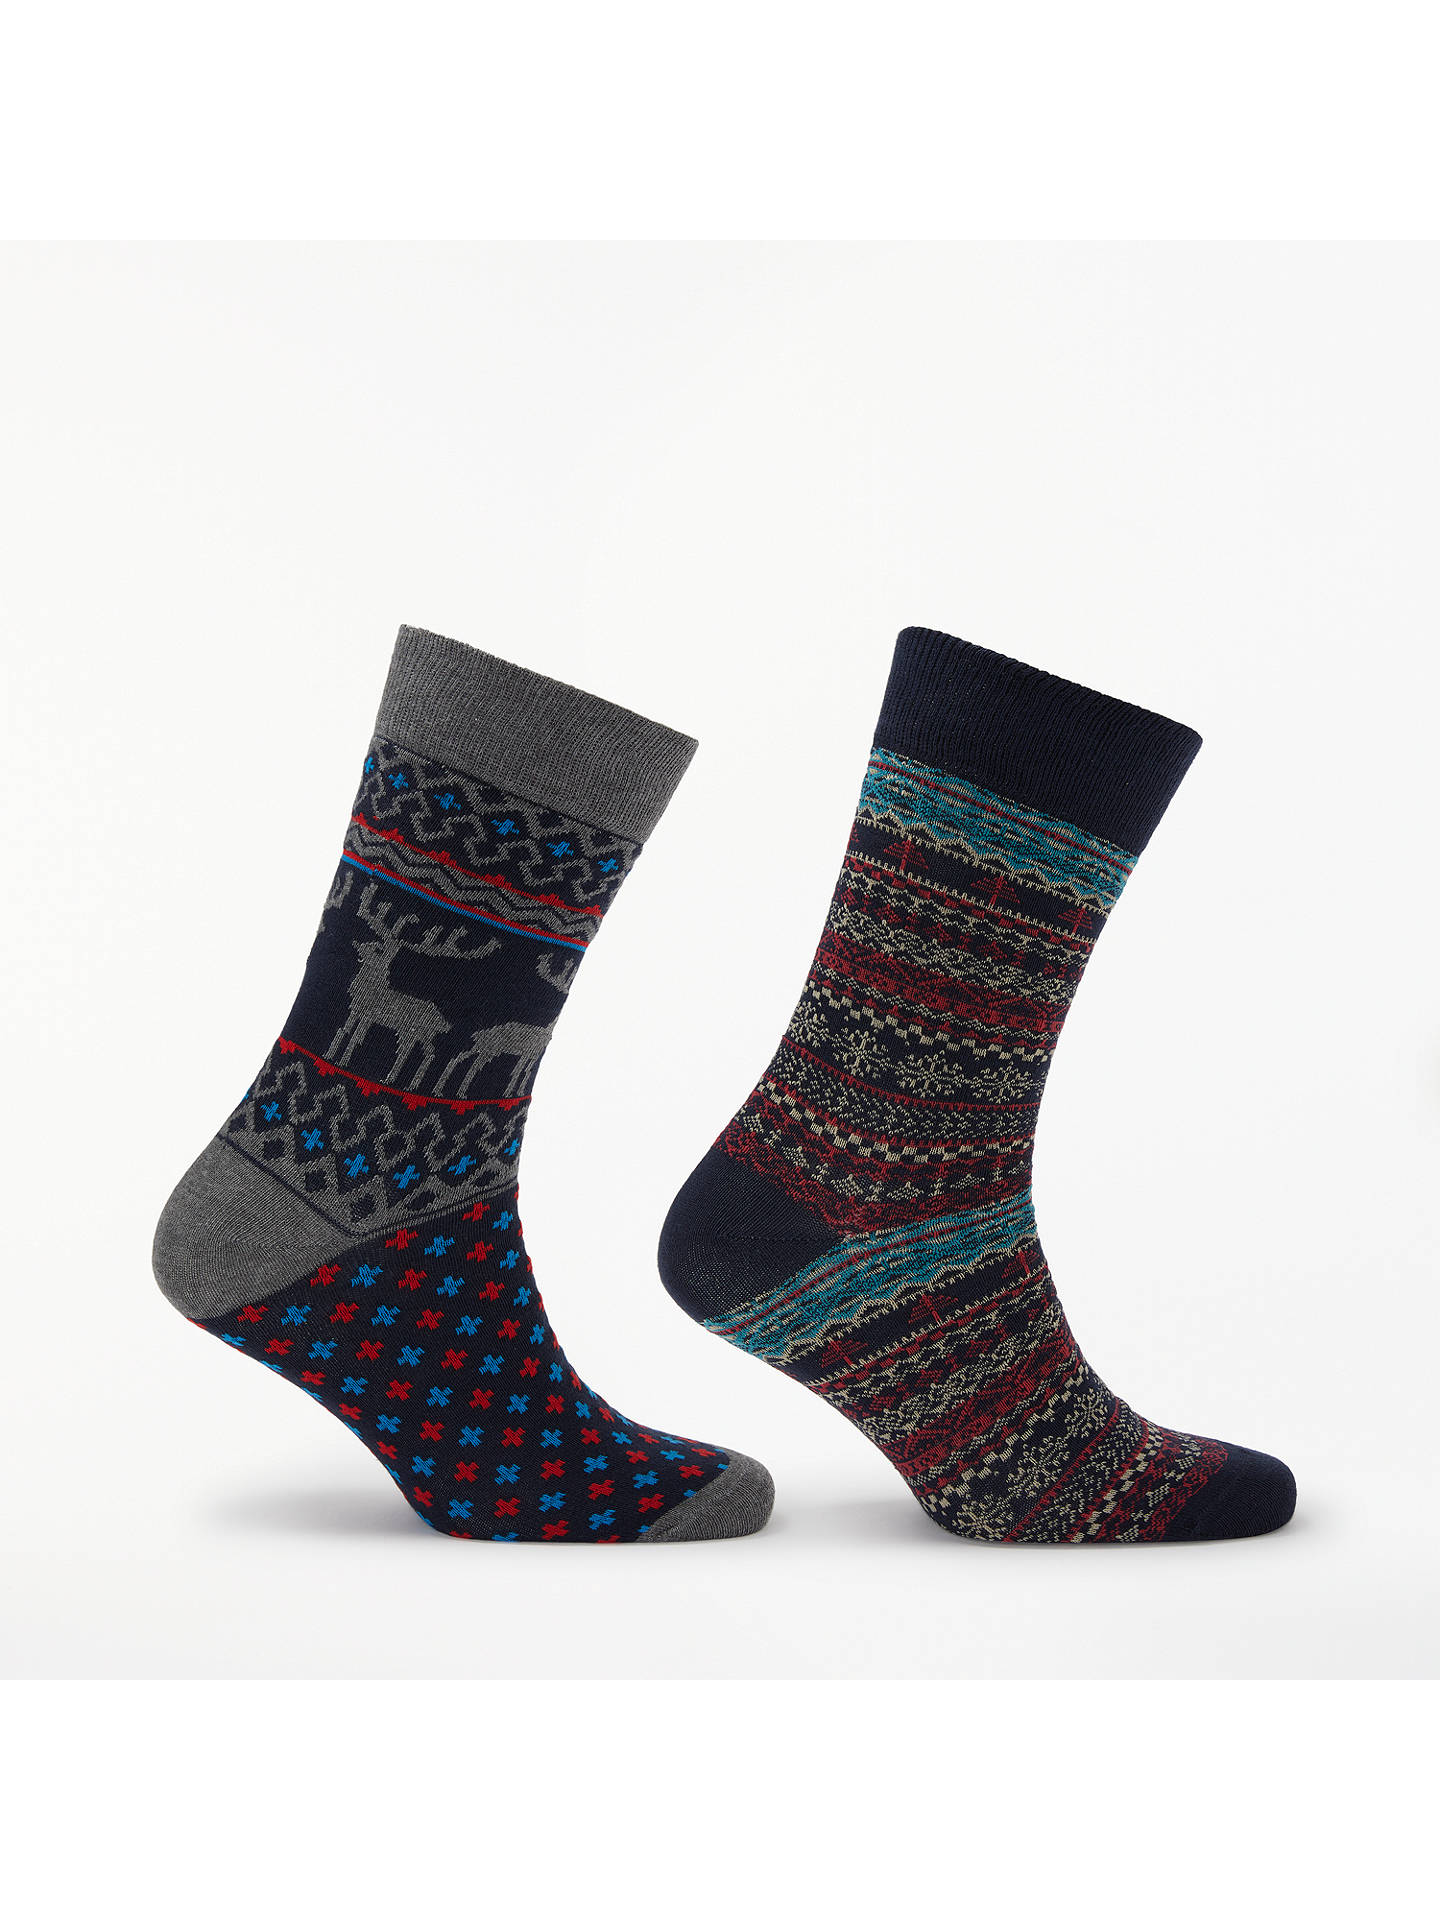 Buy John Lewis & Partners Christmas Nordic Stag Socks, One Size, Pack of 2, Blue/Grey Online at johnlewis.com